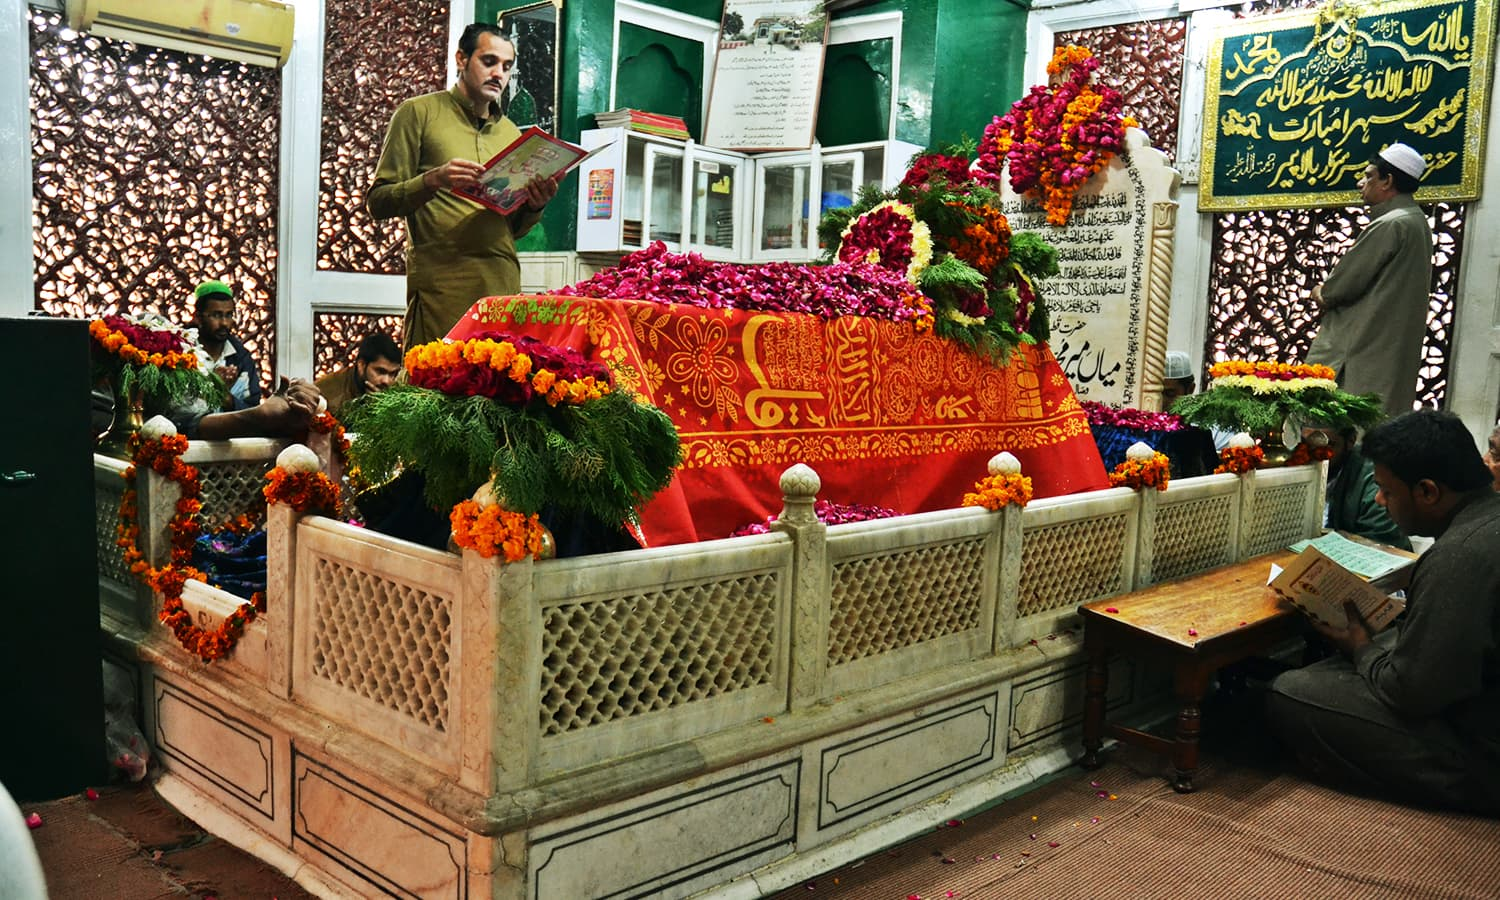 Mian Mir's grave covered with flowers while people recite the Quran. —Photo by Abdullah Khan